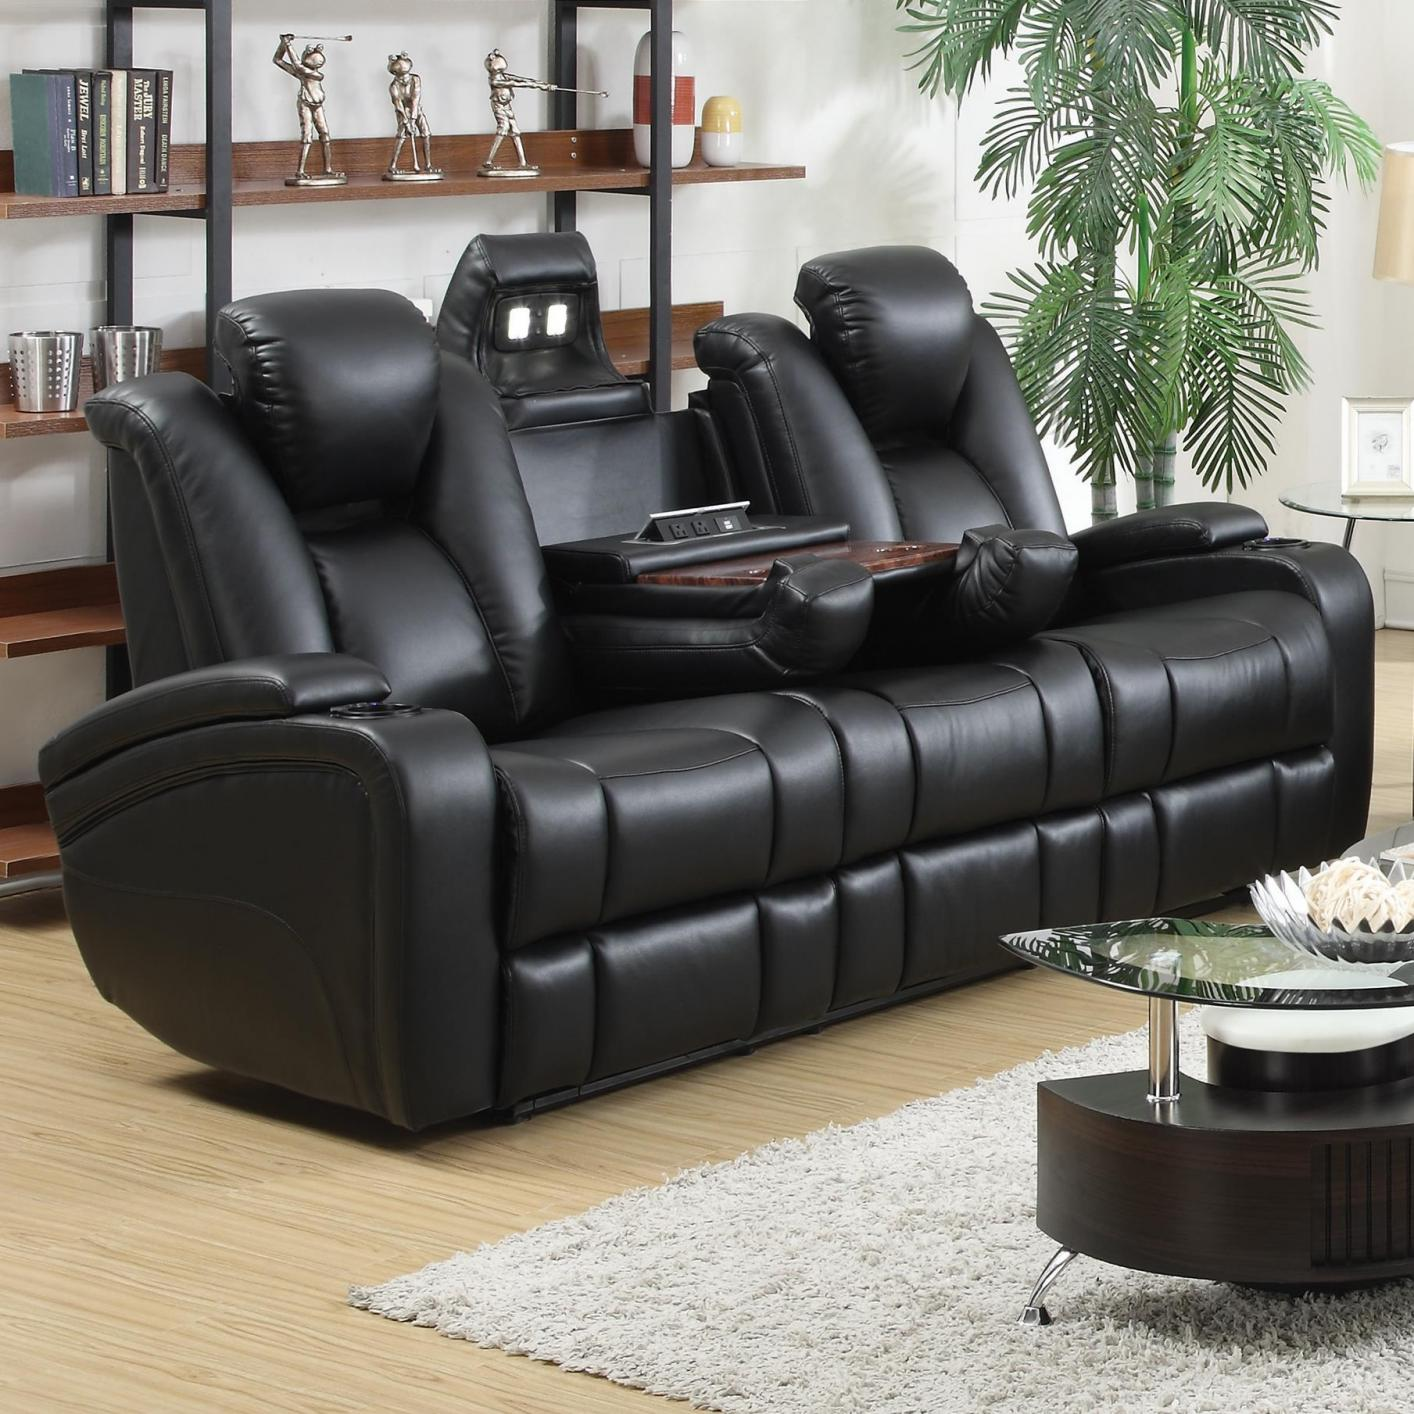 Black Leather Power Reclining Sofa & Black Leather Power Reclining Sofa - Steal-A-Sofa Furniture Outlet ... islam-shia.org